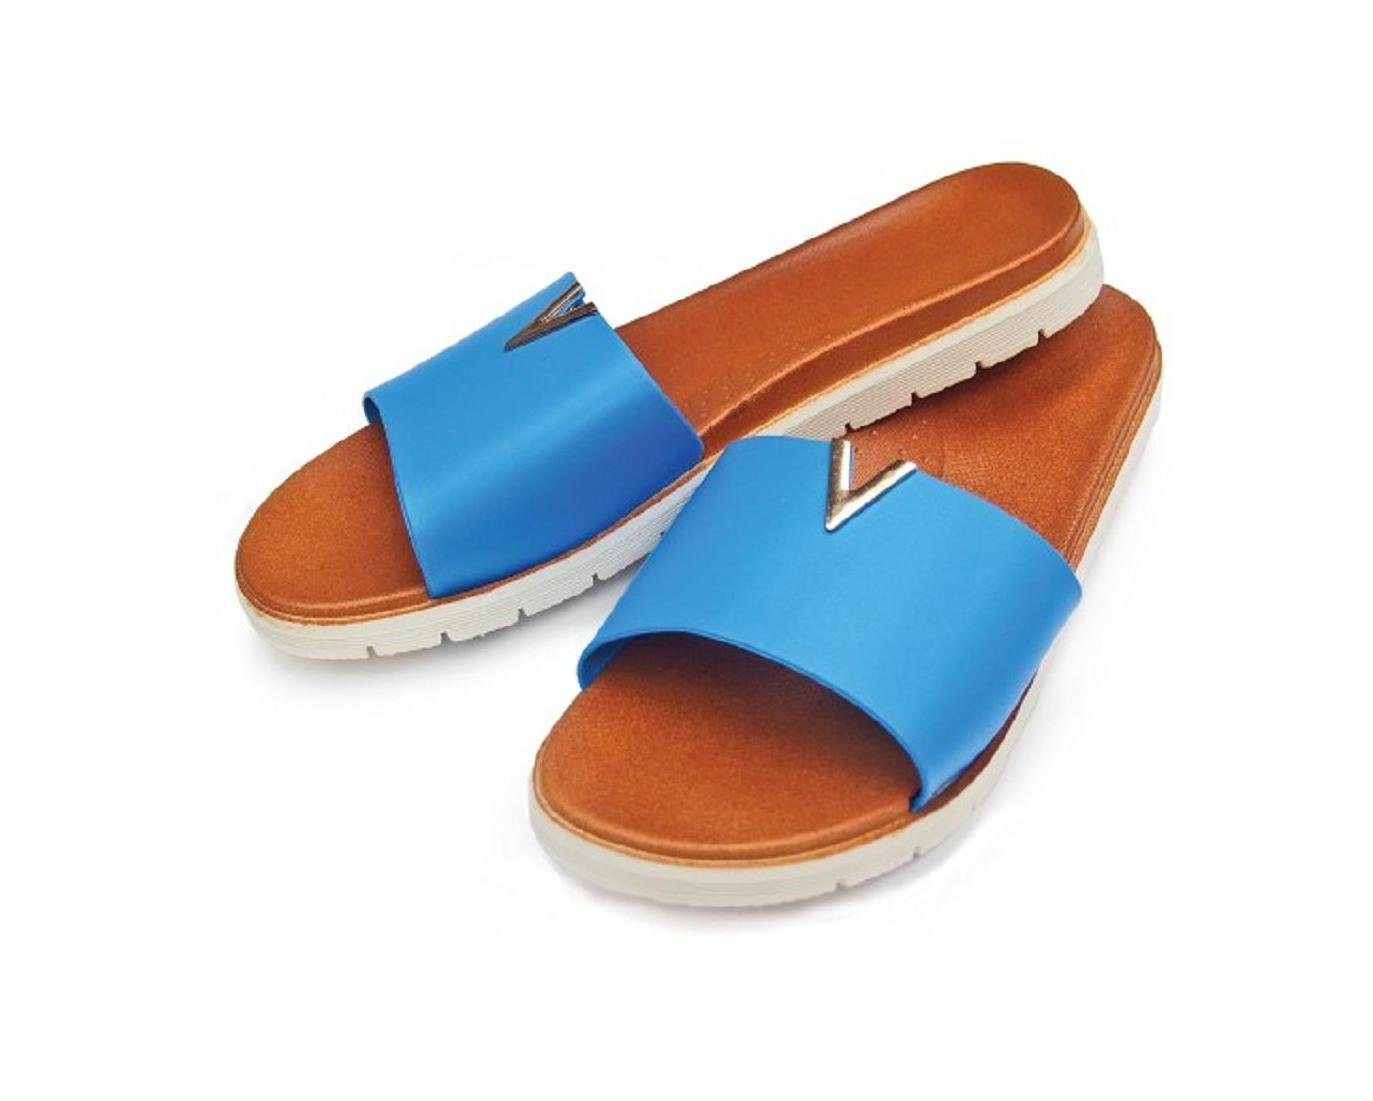 DINY Home & Style Ladies Women's Faux Leather Slide Sandals (Large 9/10, Blue)